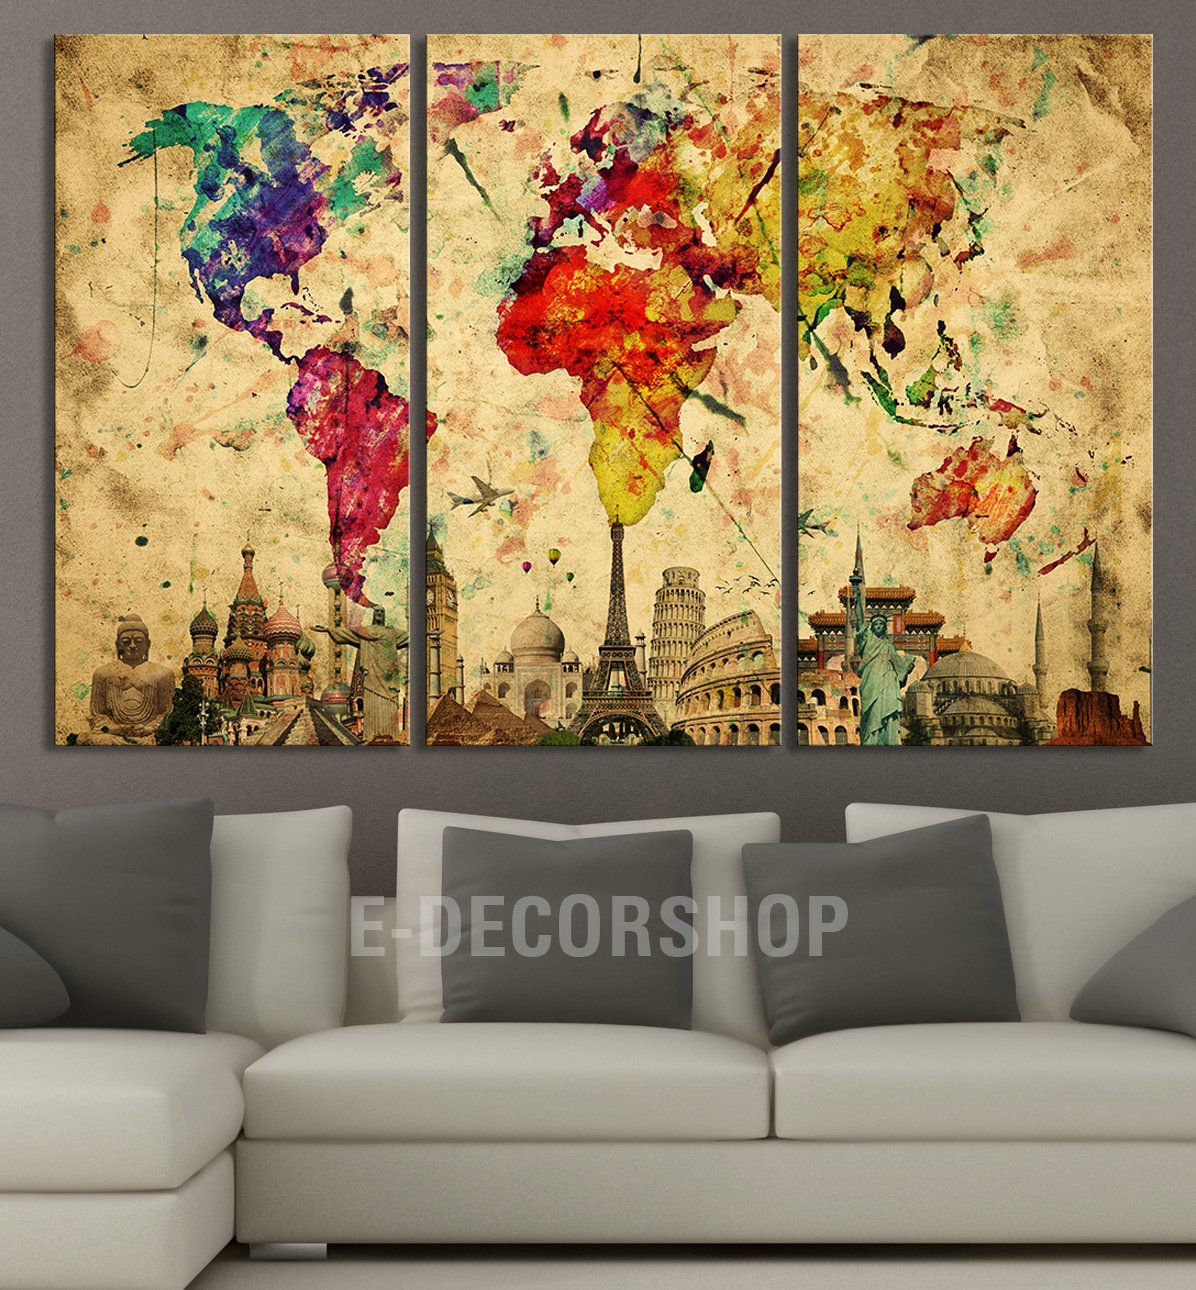 Large Wall Art Canvas World Map - Yellow Predominantly Colourful ...